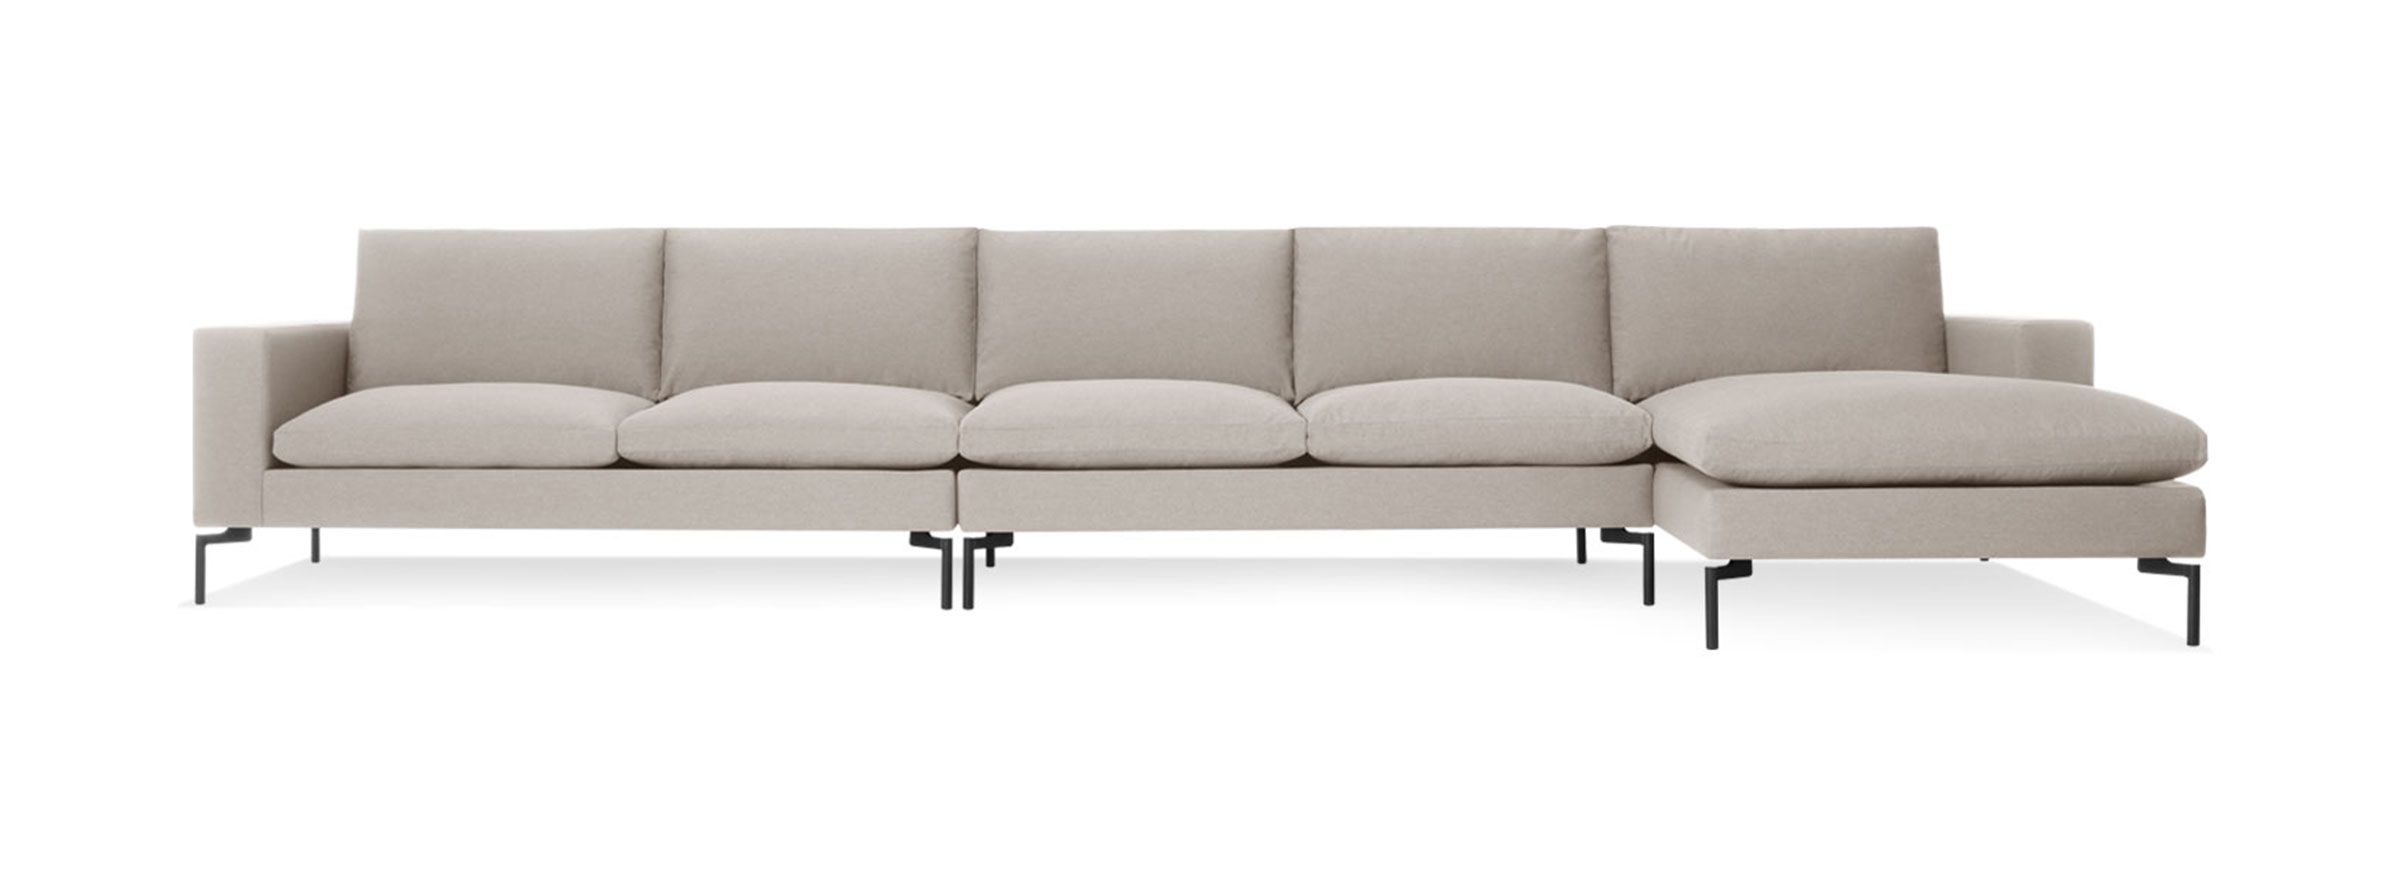 New Standard Sofa Blu Dot Sectional Sofa Modern Sofa Sectional Sectional